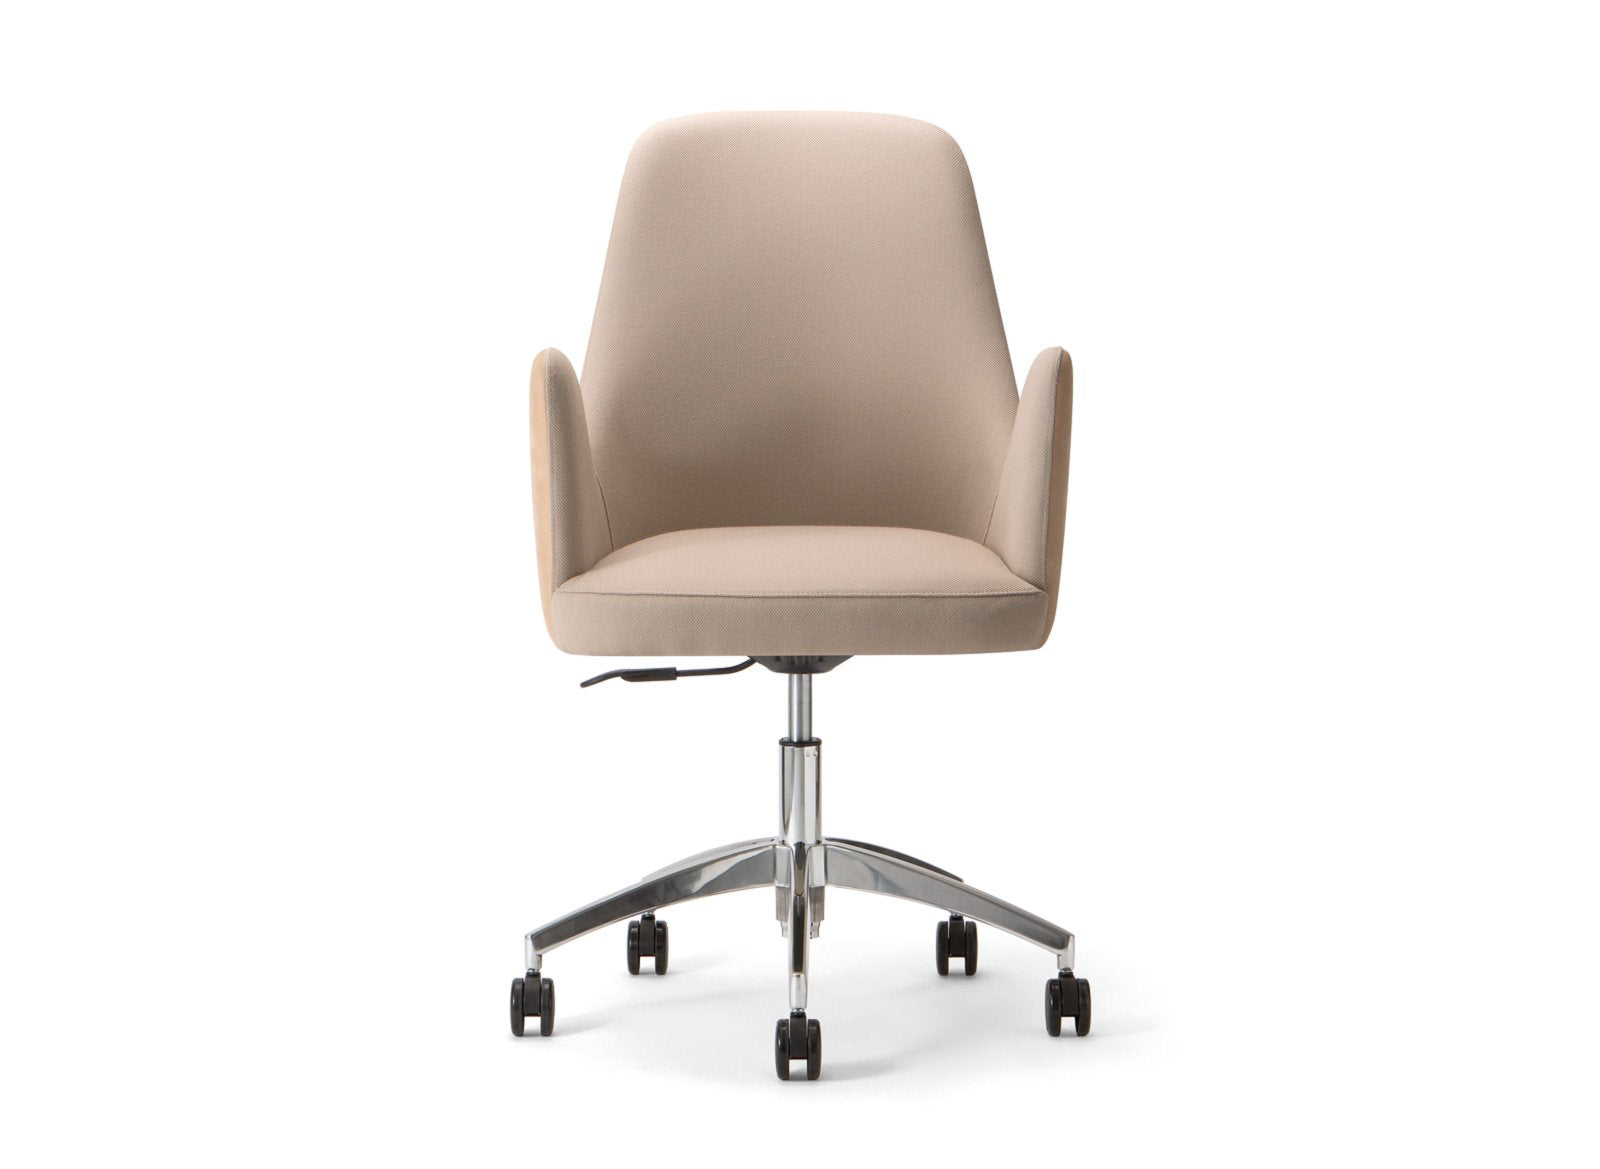 Adima 04 Armchair c/w Wheels-Torre-Contract Furniture Store